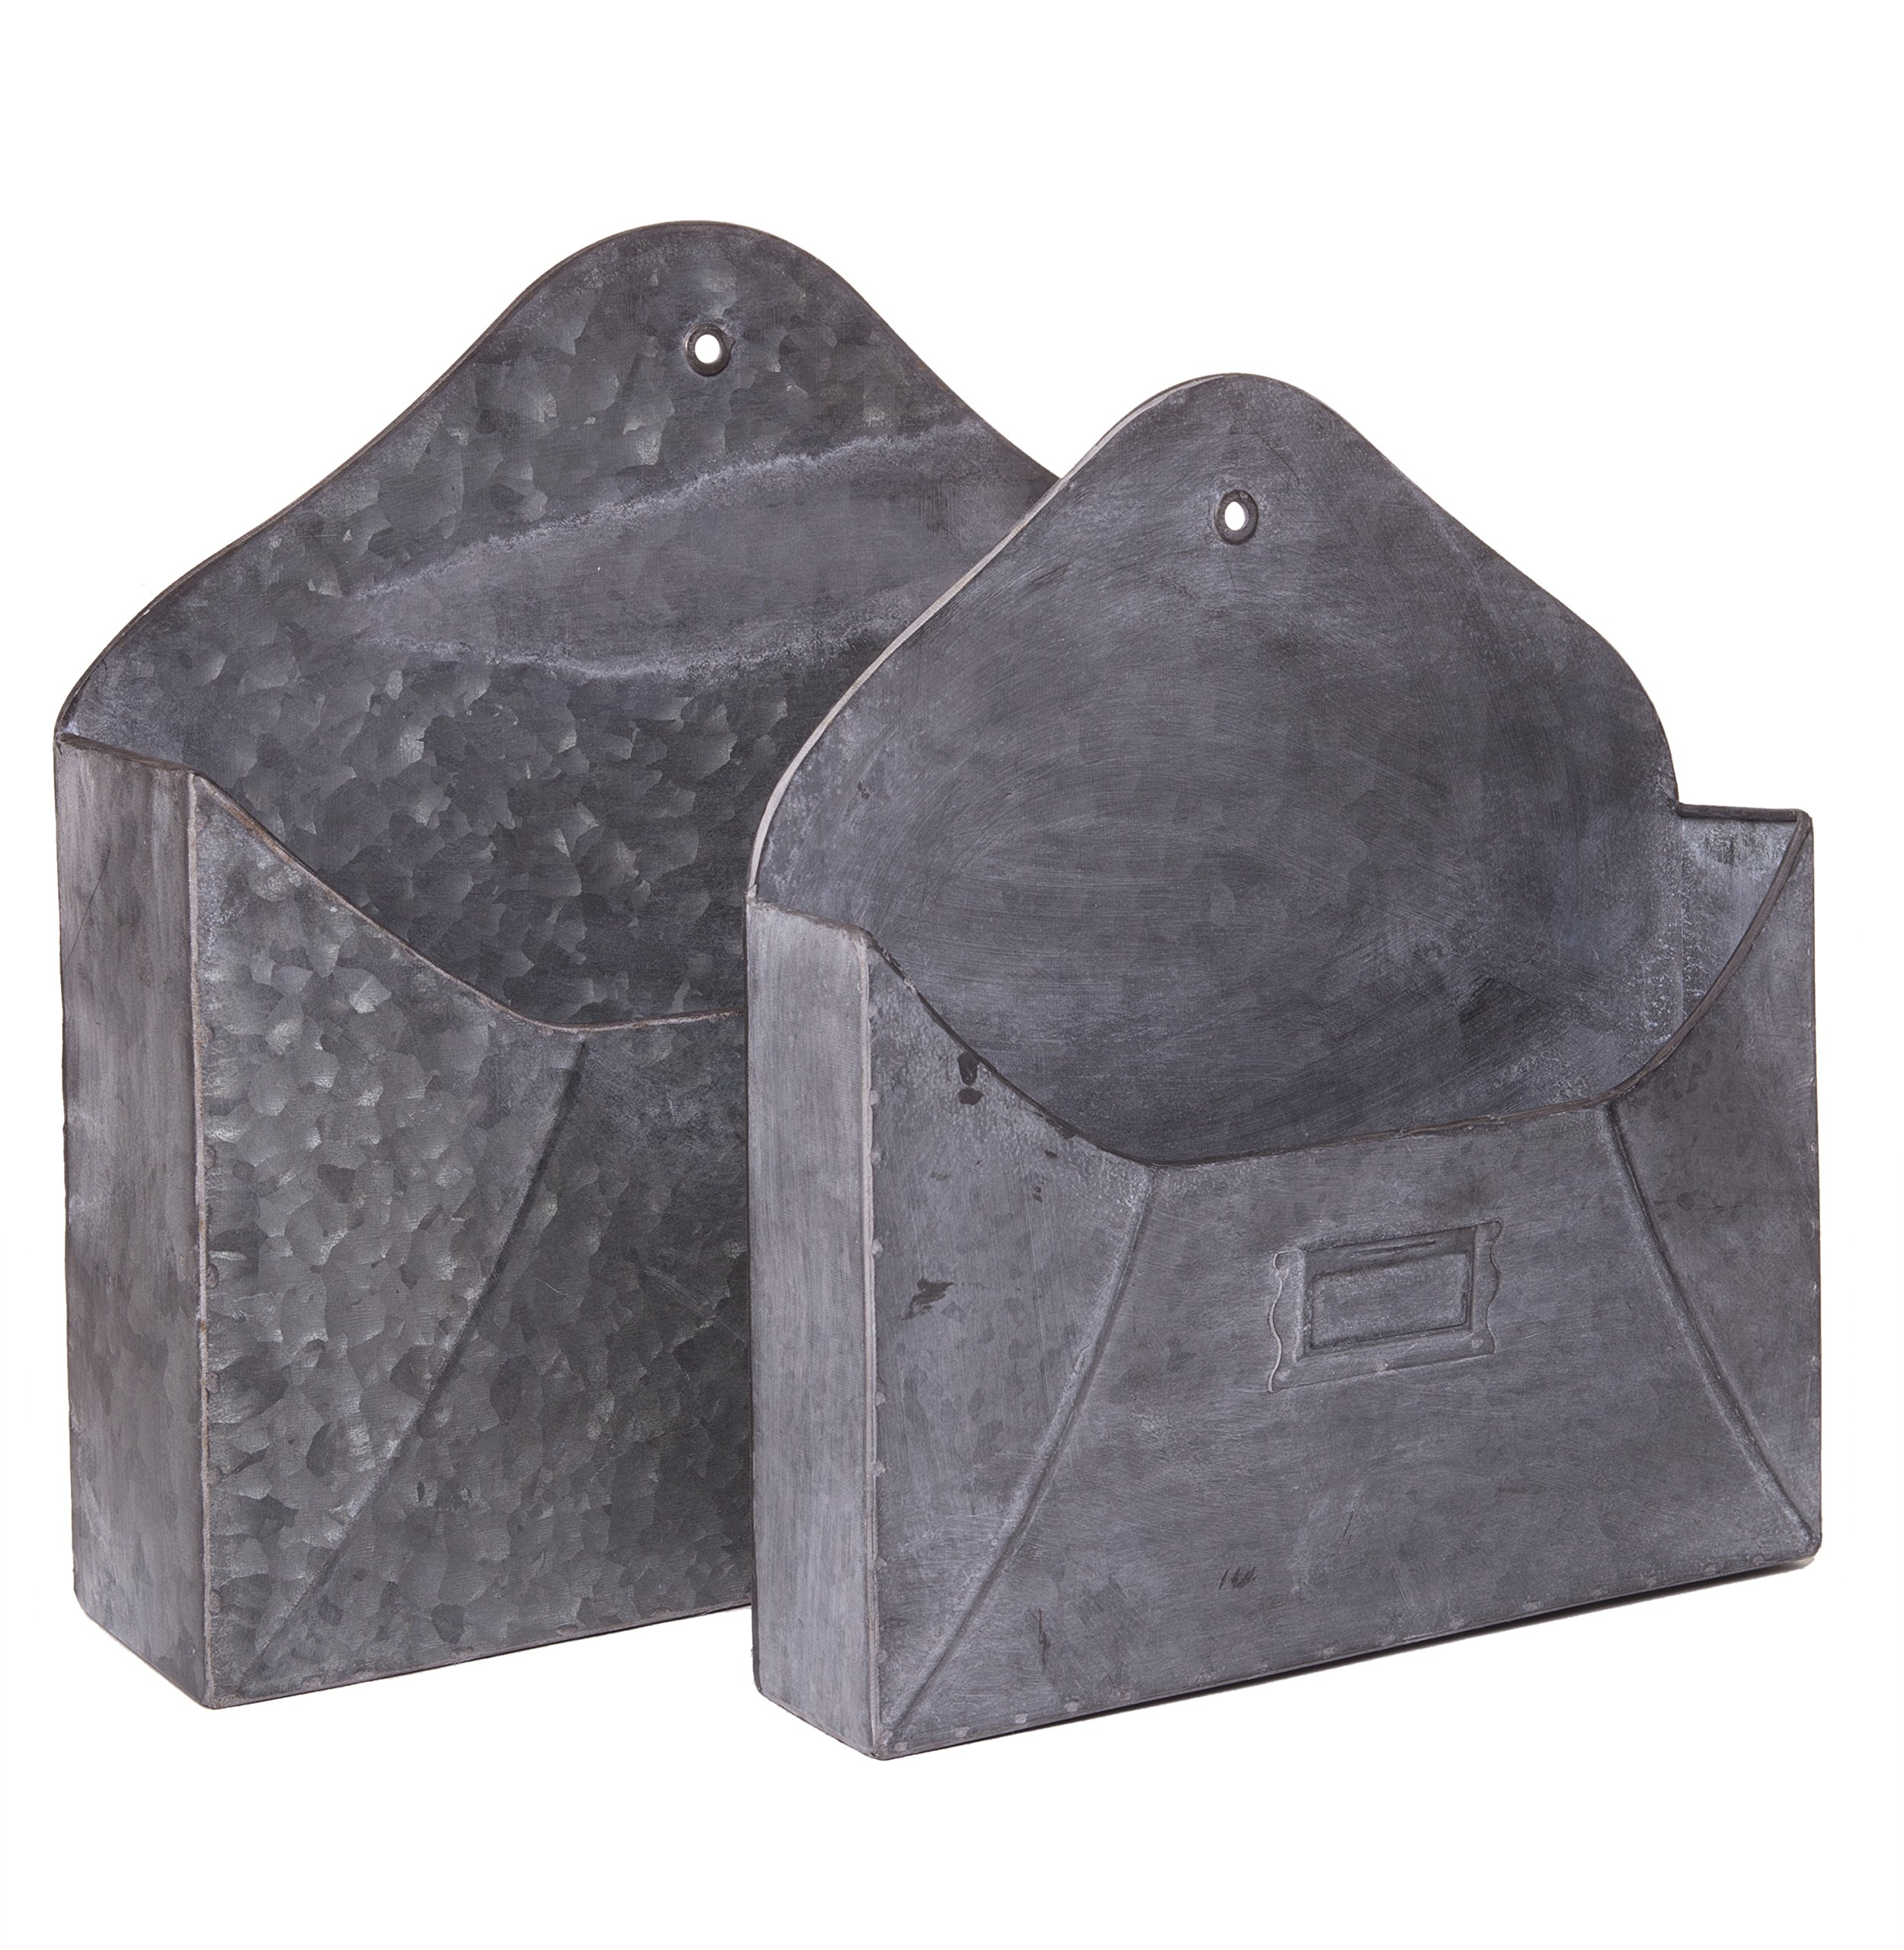 Rustic Galvanized Metal Wall Pocket, Wall Mounted Decorative Storage Bin, Set of 2 Sizes, 11-inch & 13-inch